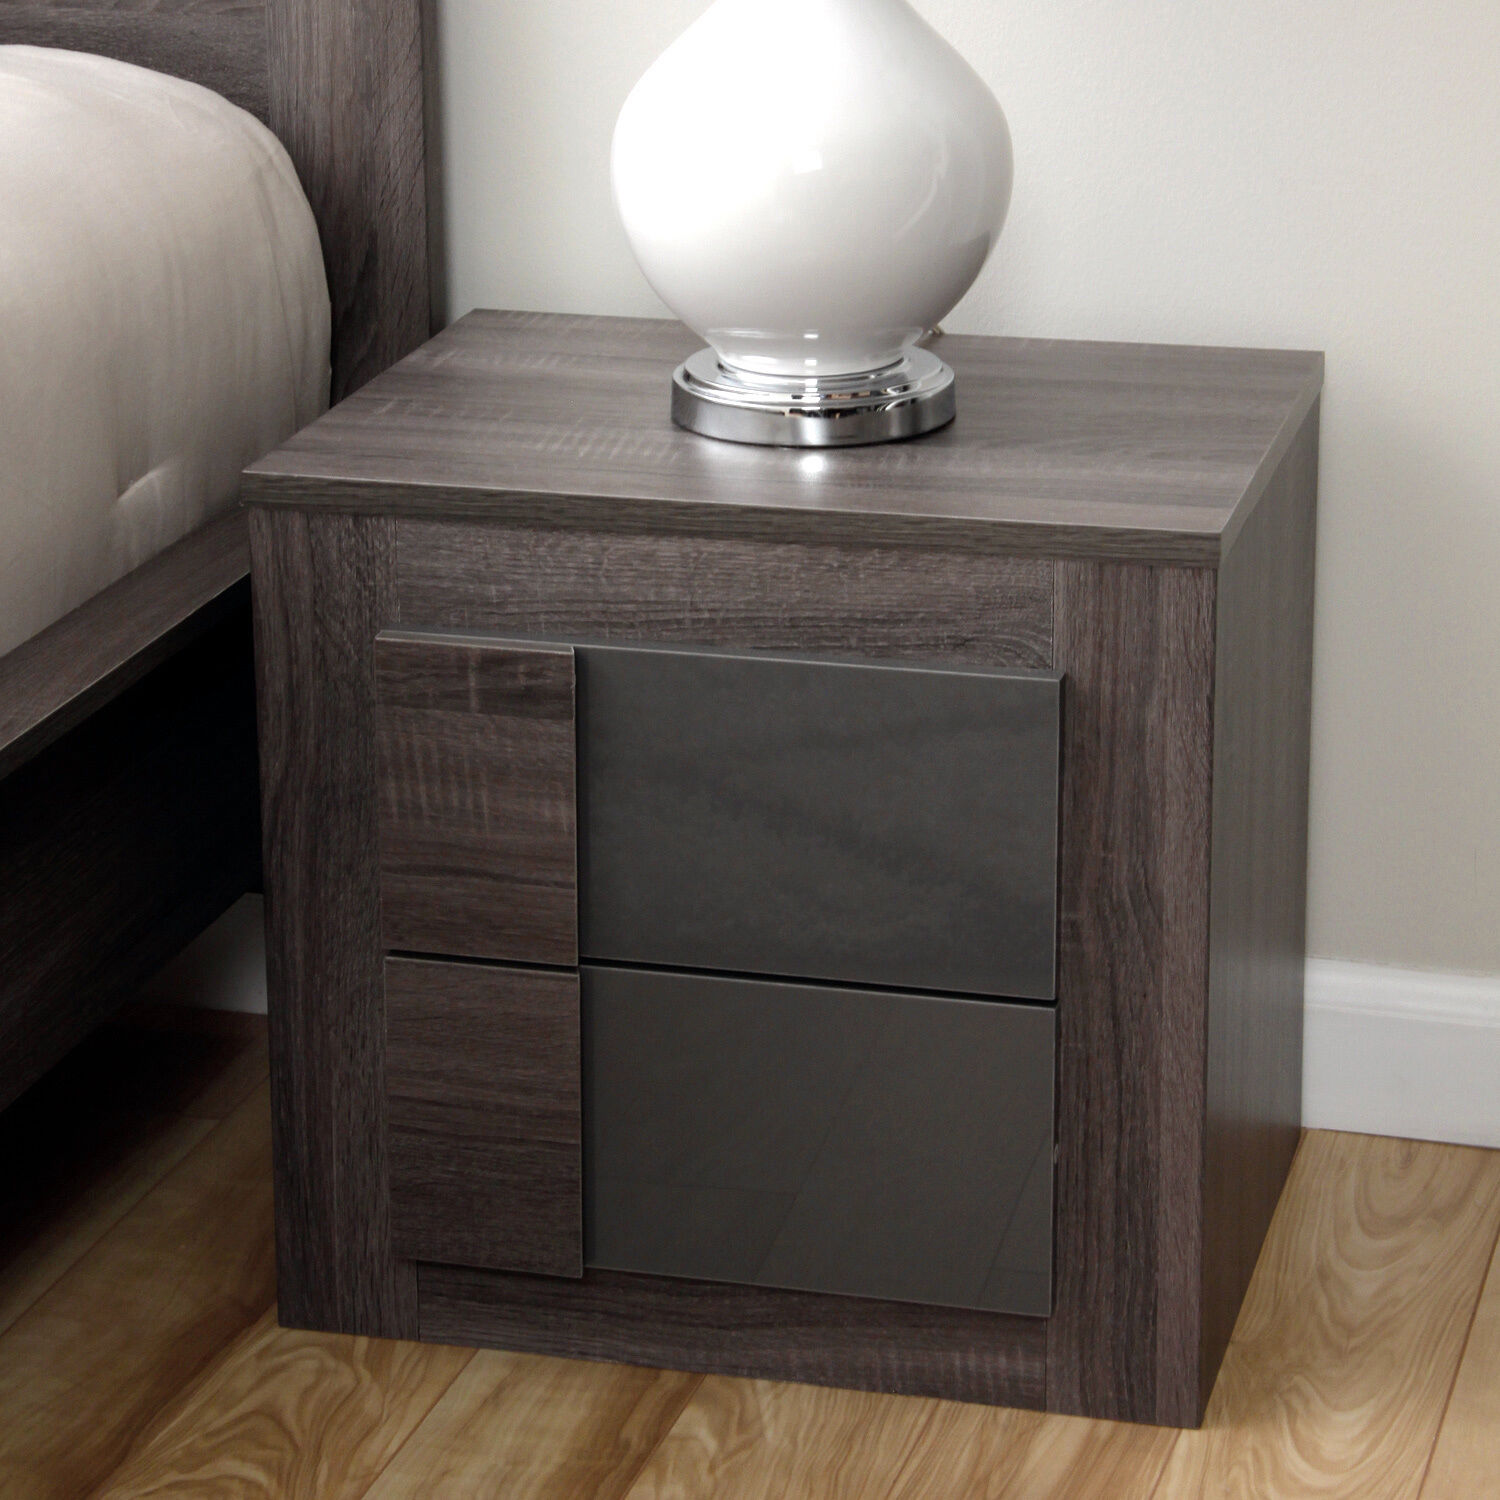 Modern Bed Stand 2 Drawer Night Stand Table Modern Bedroom Furnishing Bed